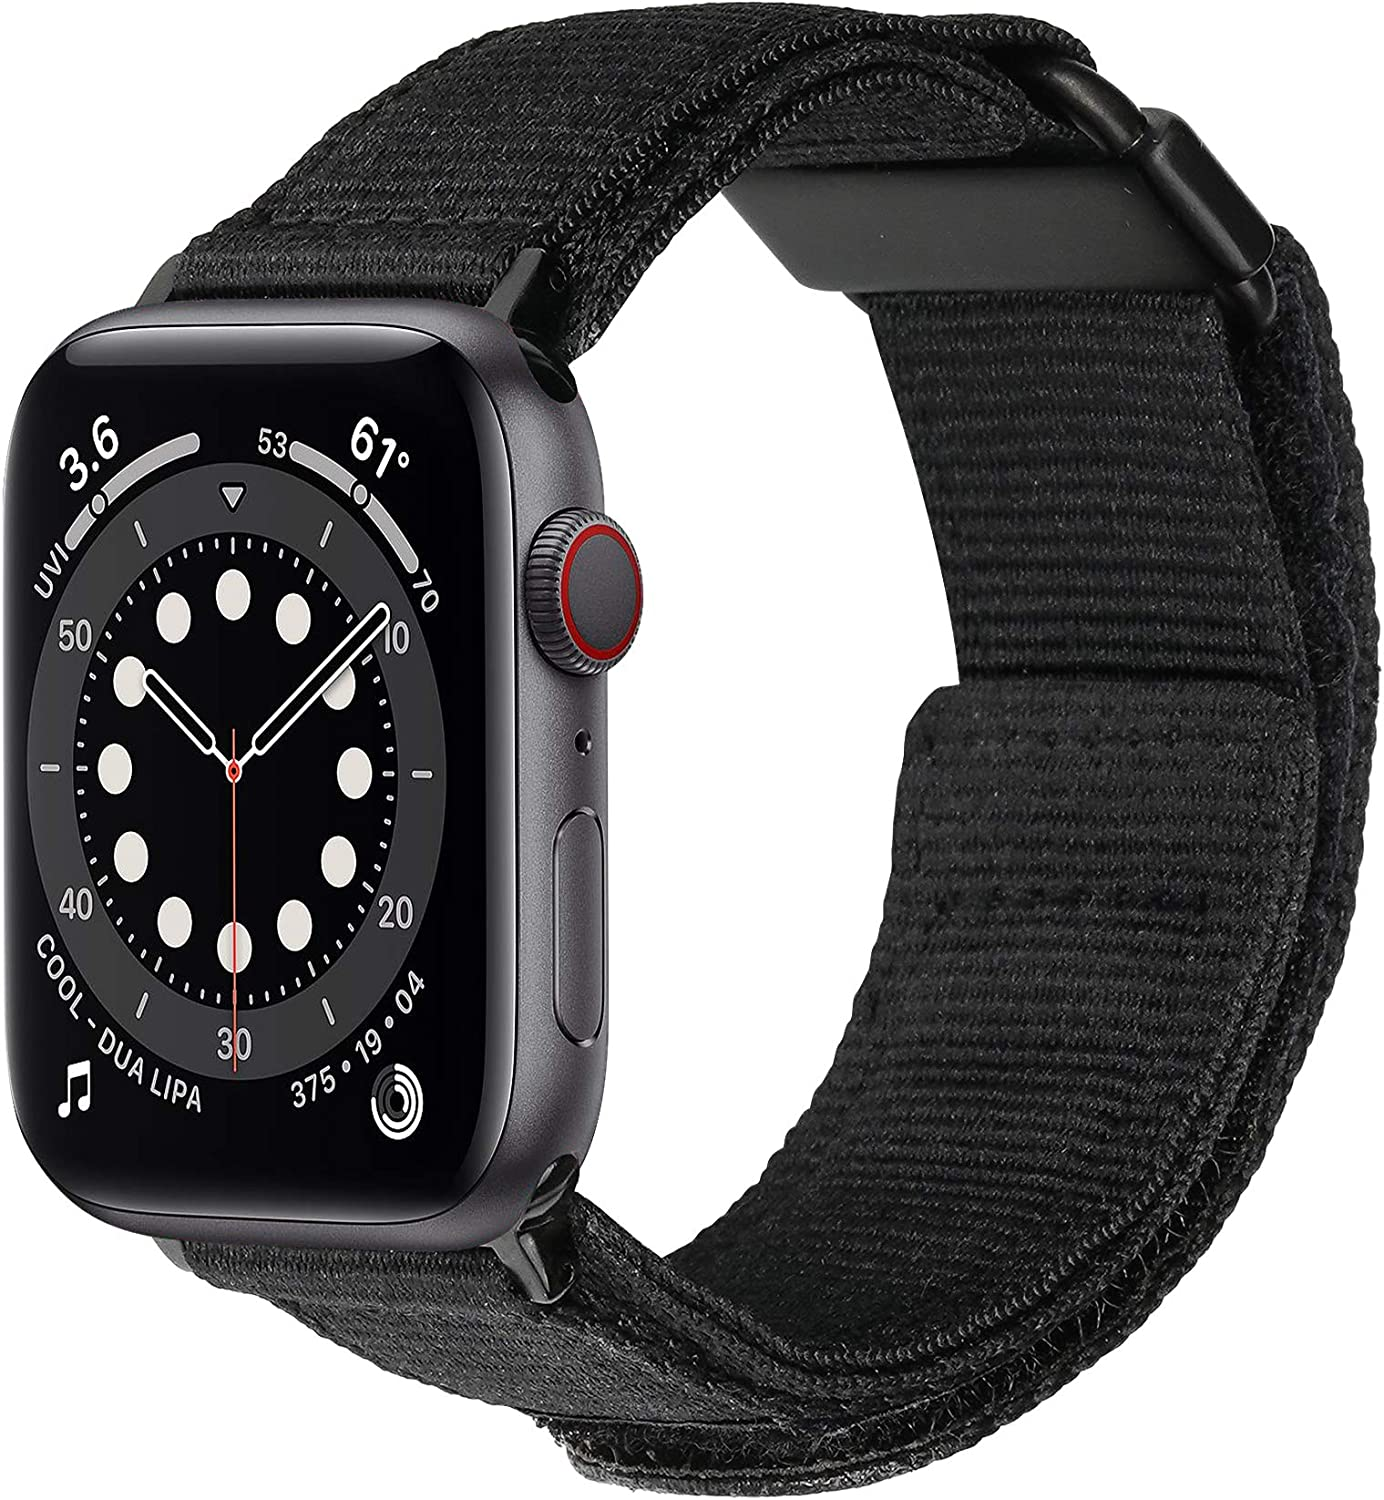 baozai Compatible with Apple Watch Band 44mm 42mm, iWatch Series 6/5/4/3/2/1 & Watch SE, Nylon Weave Loop Sport Strap with Metal Buckle for Men (Black, 44mm/42mm)